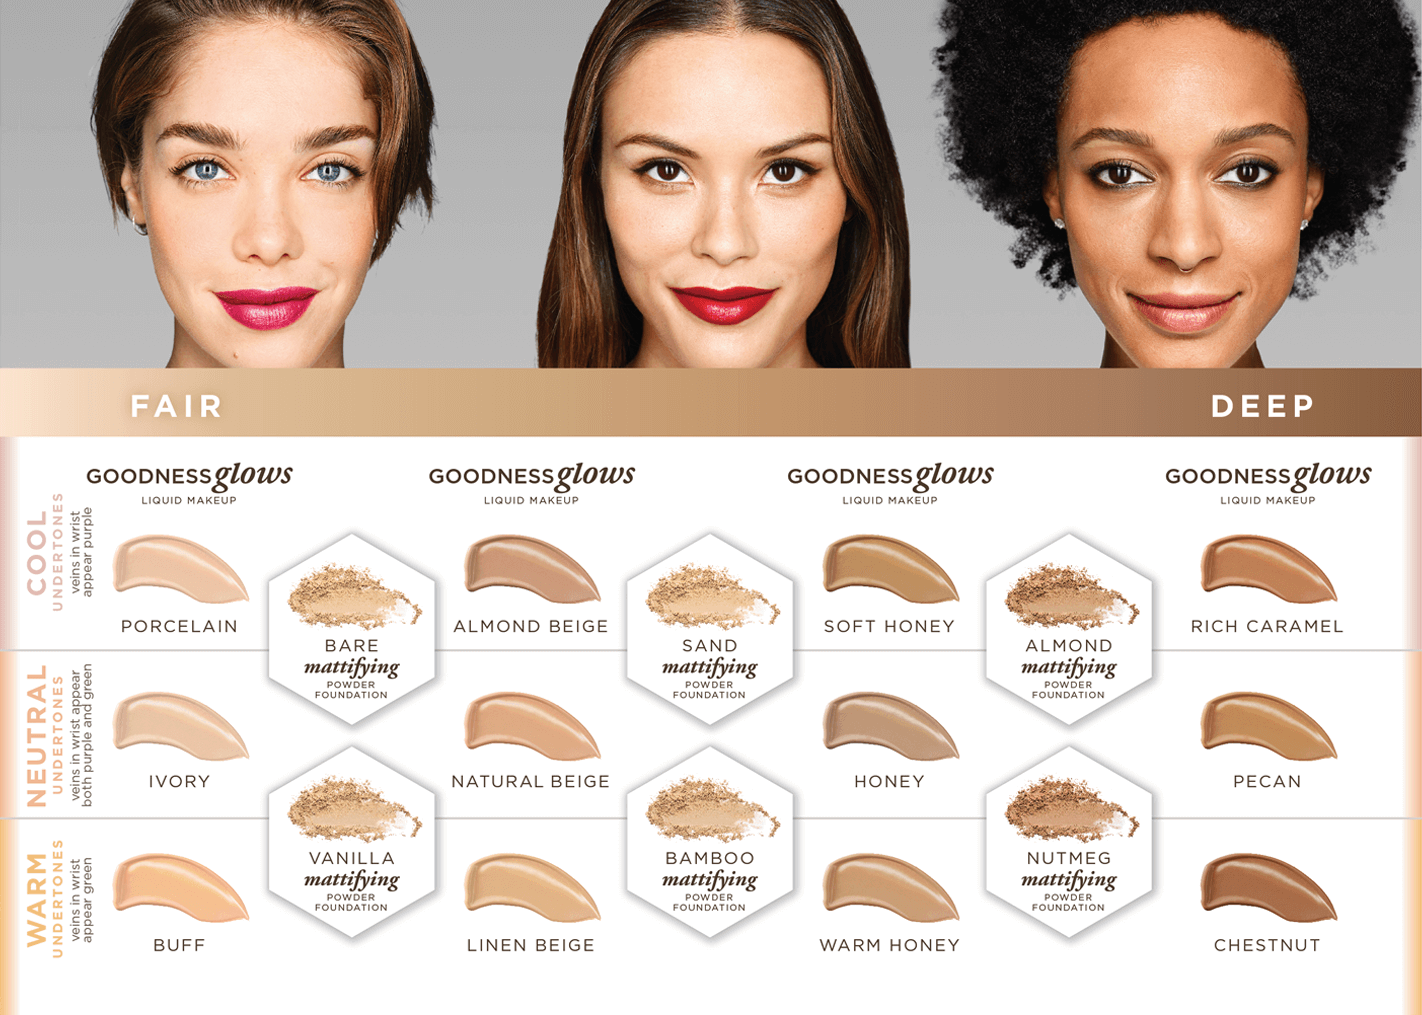 Burts bees foundation shade finder shop now back to makeup nvjuhfo Gallery